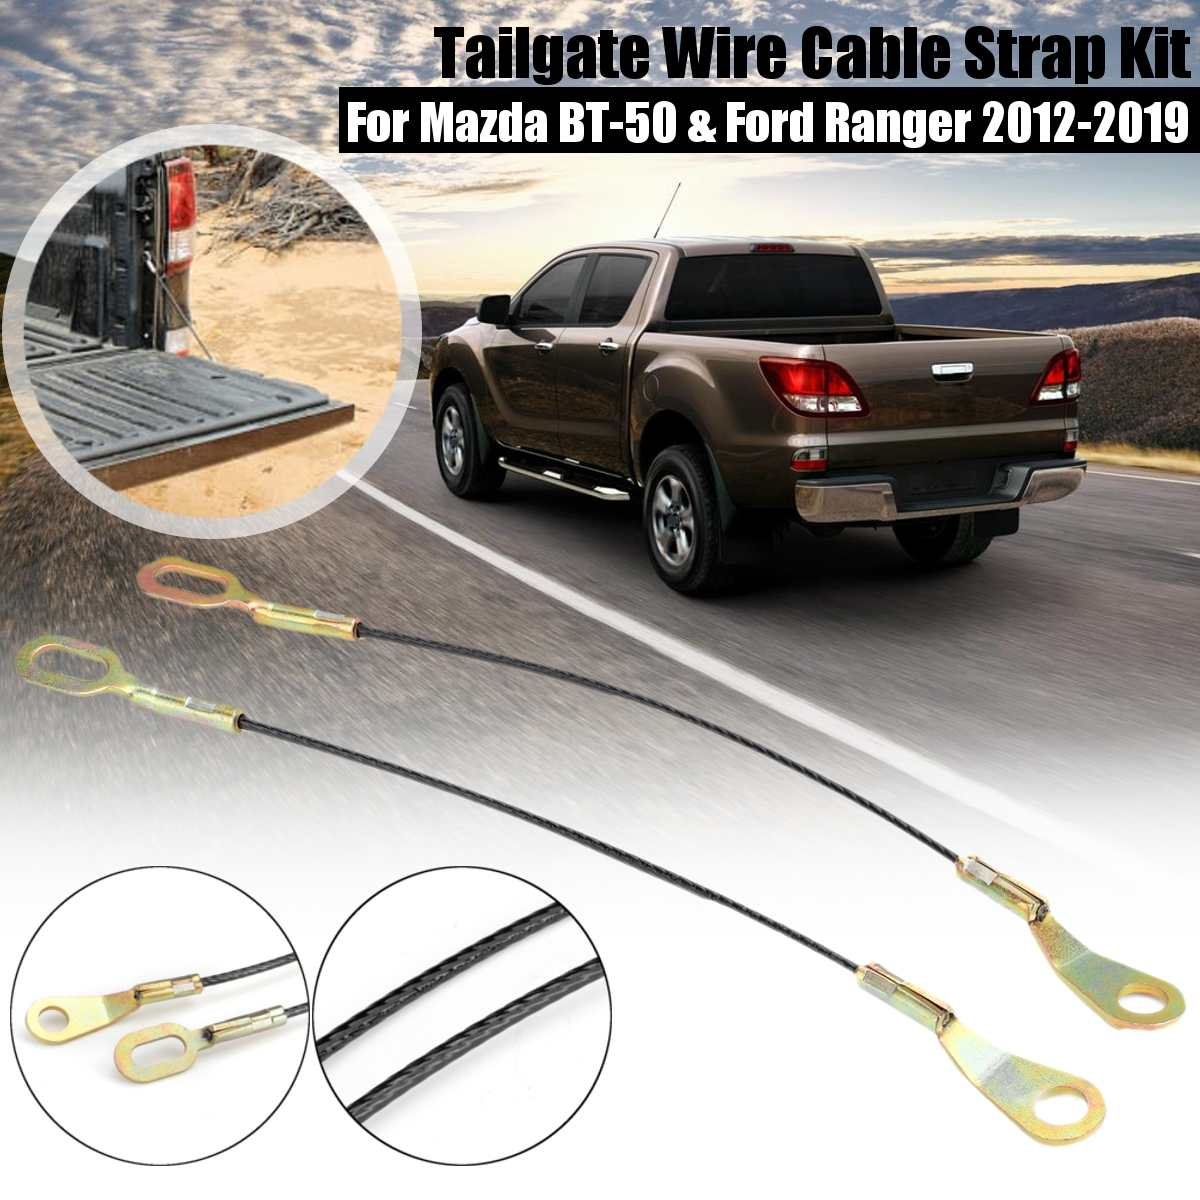 1 Pair Tailgate Cables For Ford Ranger For Mazda BT-50/Fighter B2500  2012-2019 Pickup Truck Tailgate Wire Cable Strap Support